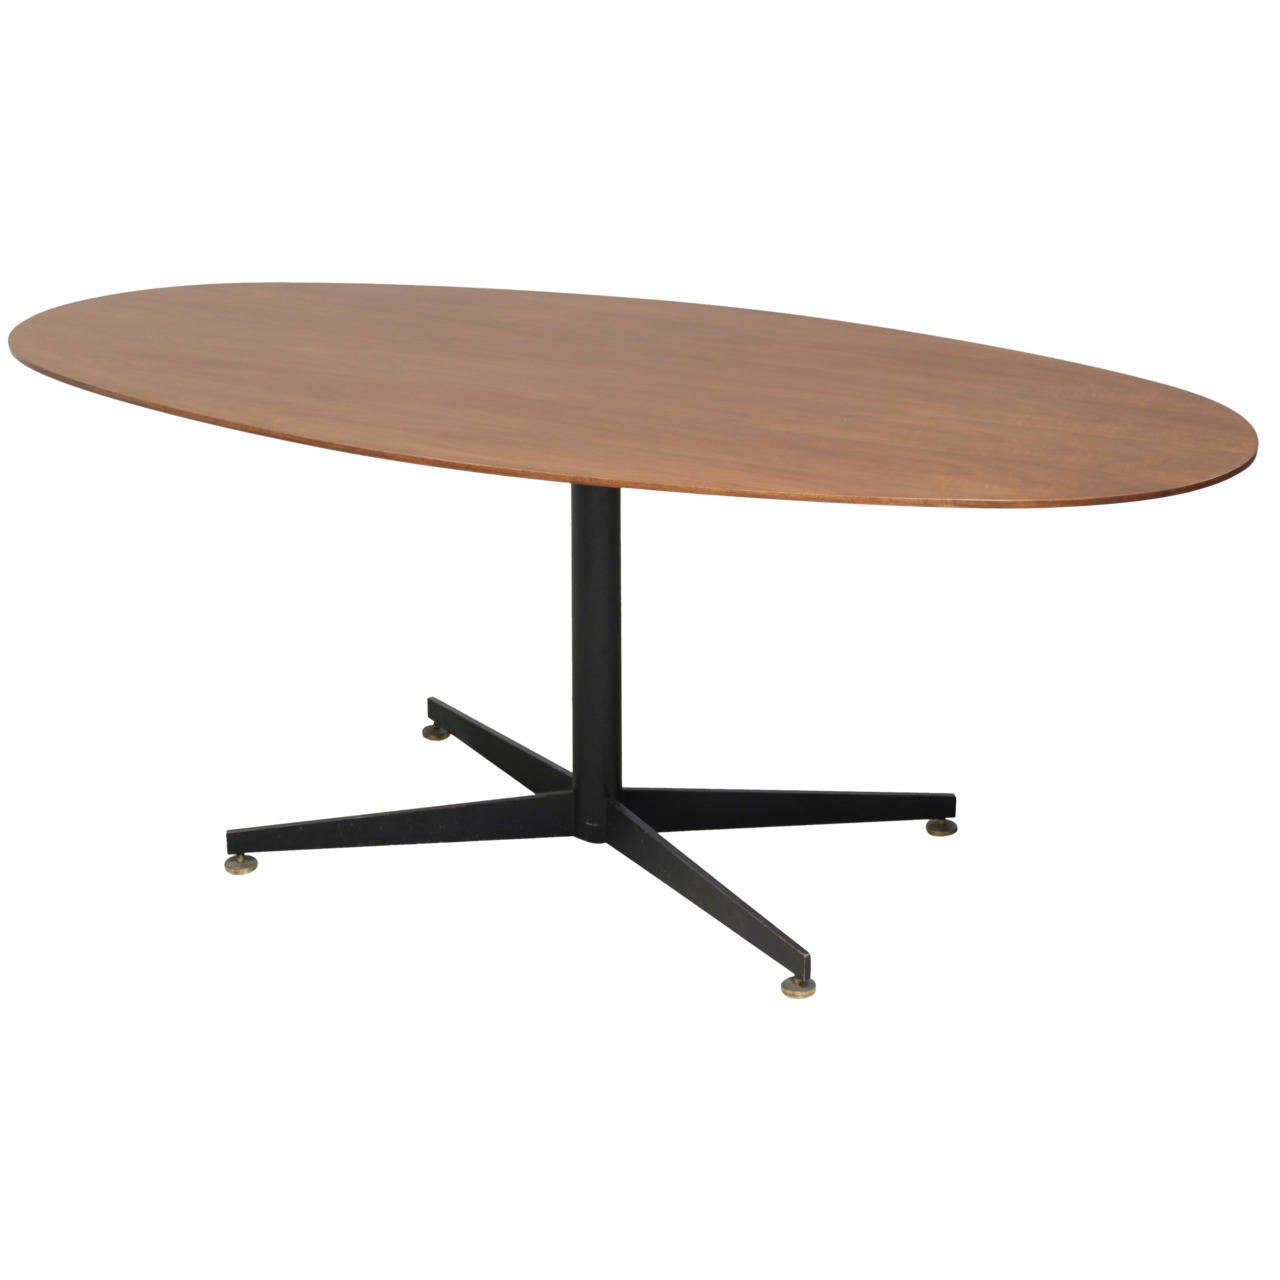 Oval Italian Dining Table with Wooden Top For Sale